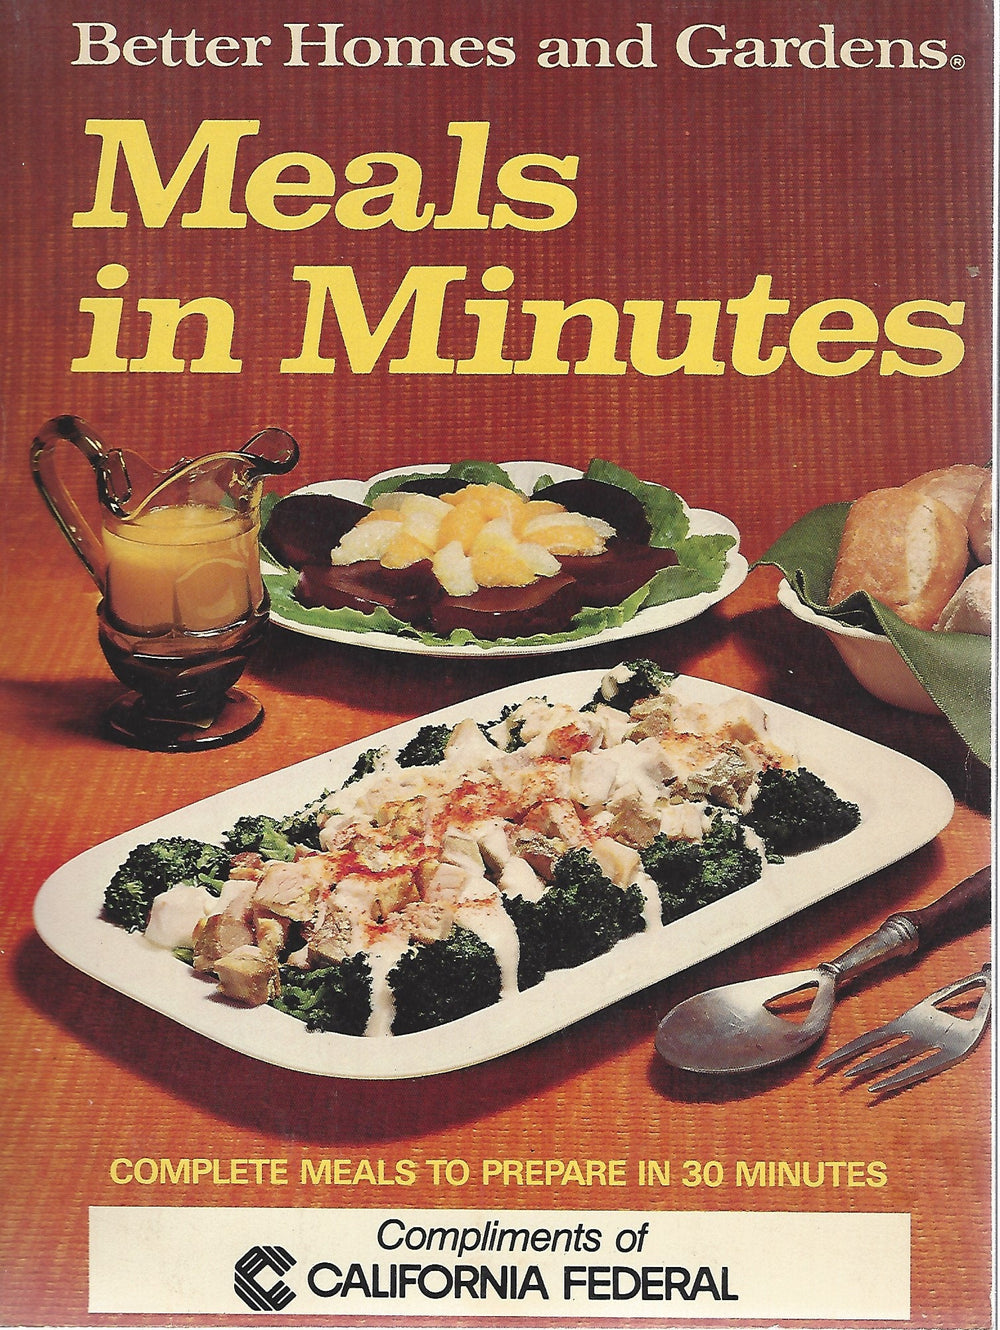 Better Homes and Gardens:Meals in Minutes Cook Book (Softcover) 1973